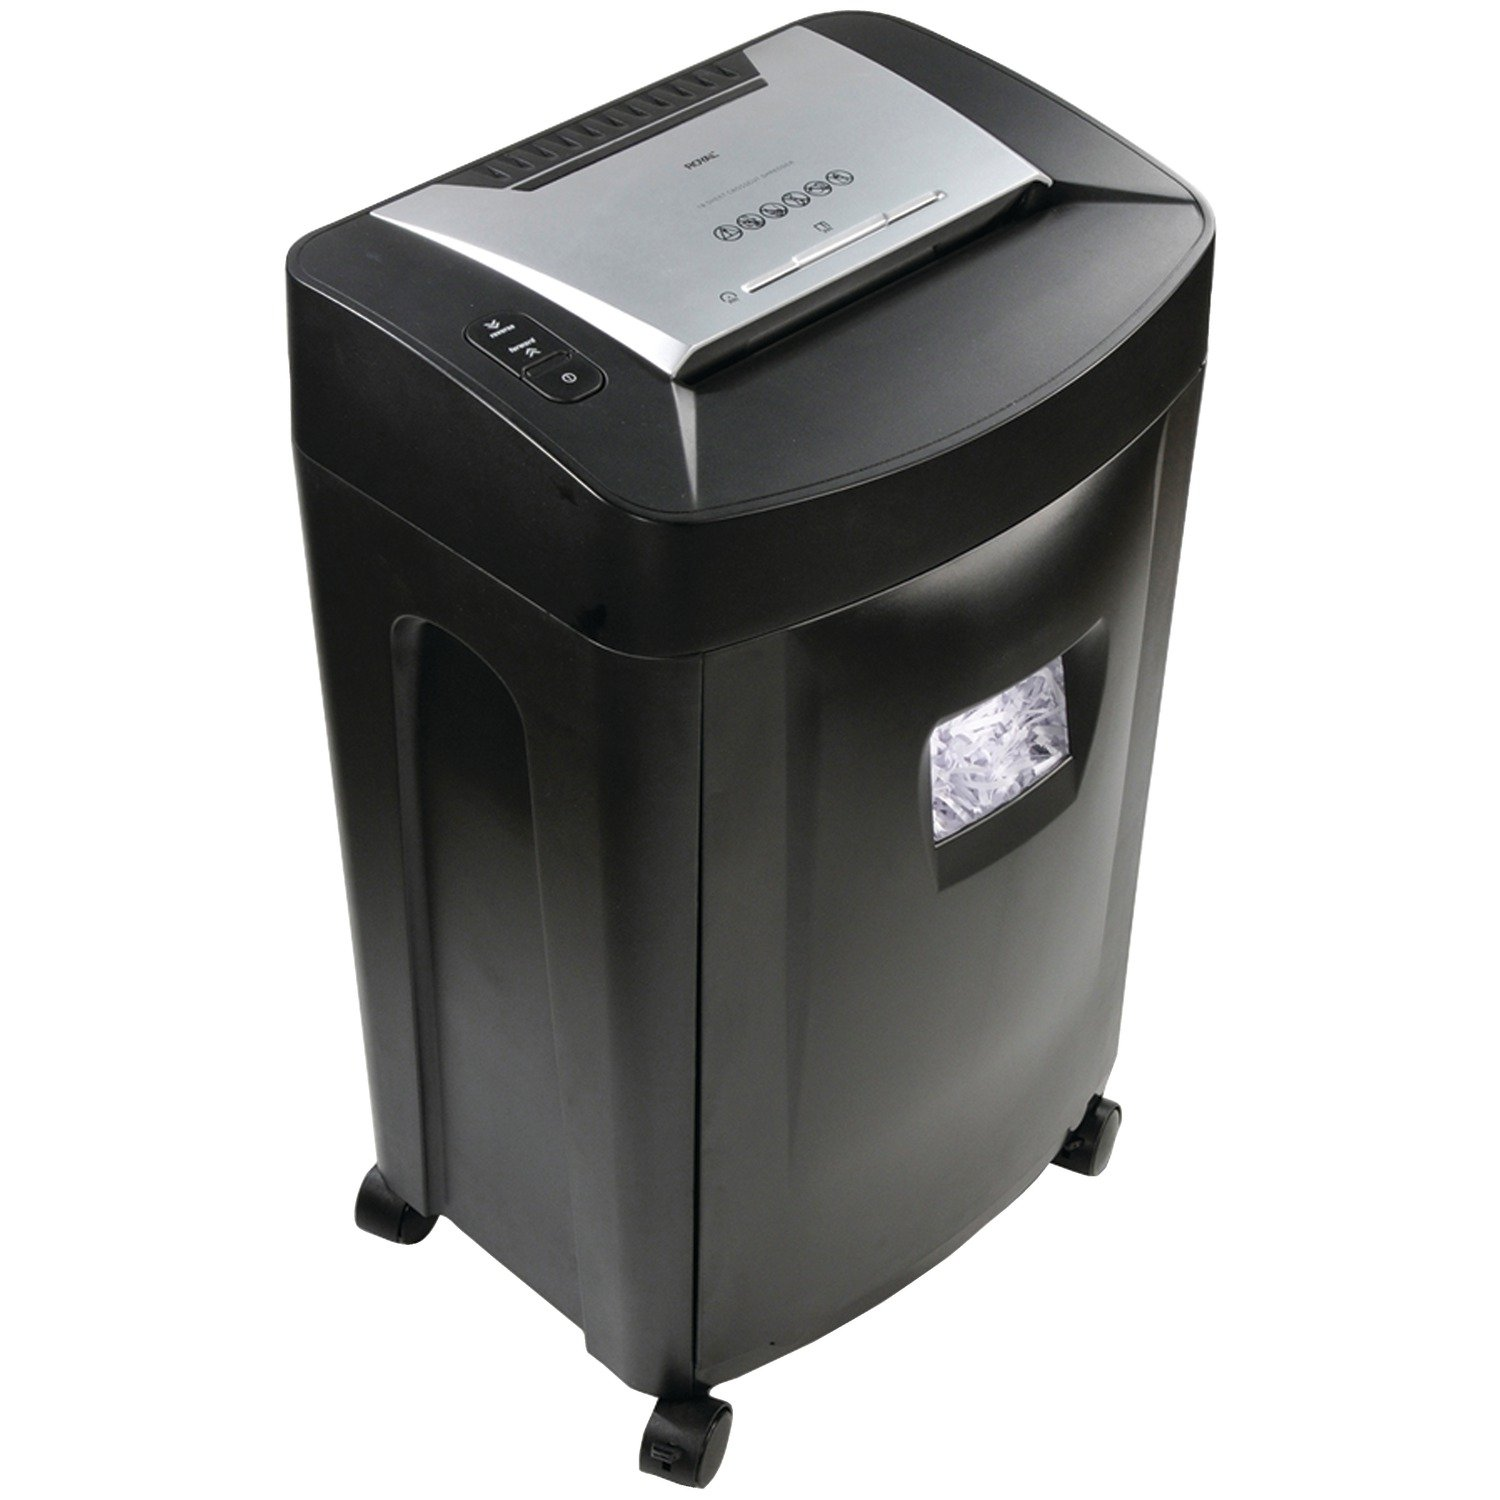 best business paper shredder Gift certificates/cards international hot new releases best sellers today's deals  business paper shredder  paper shredder with 24-sheet.